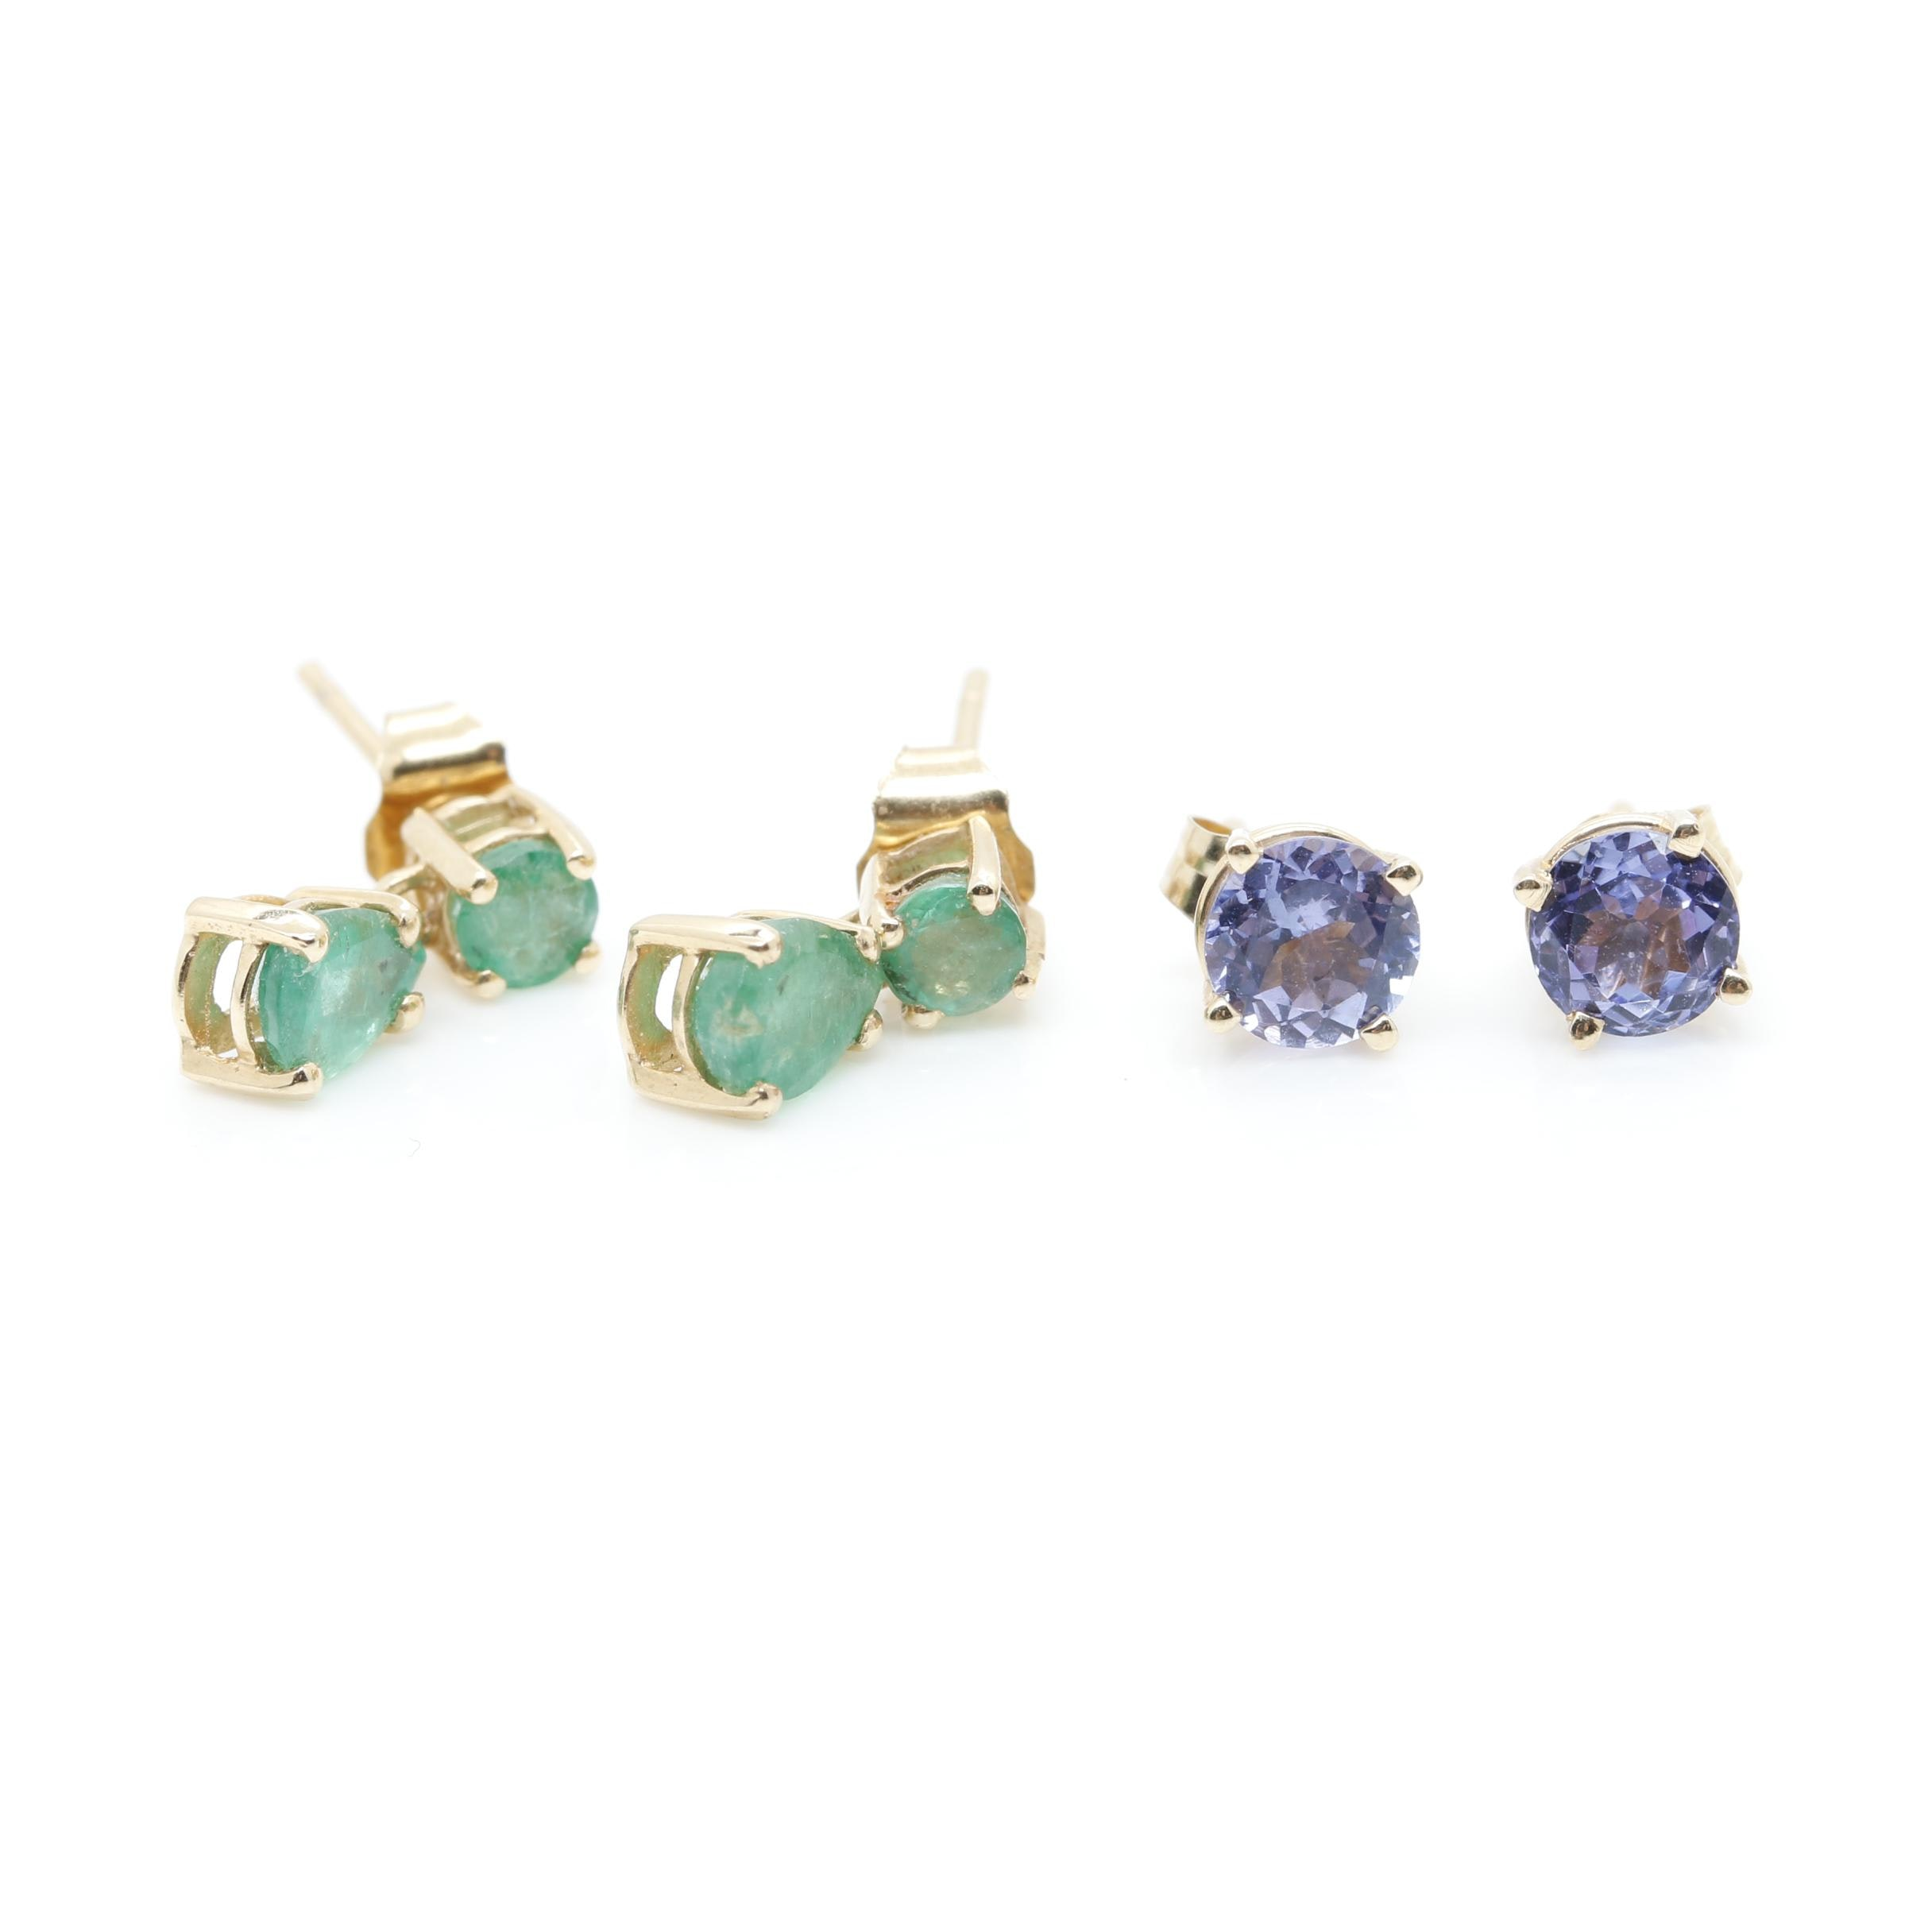 14K Yellow Gold Earring Assortment Including Emerald and Tanzanite